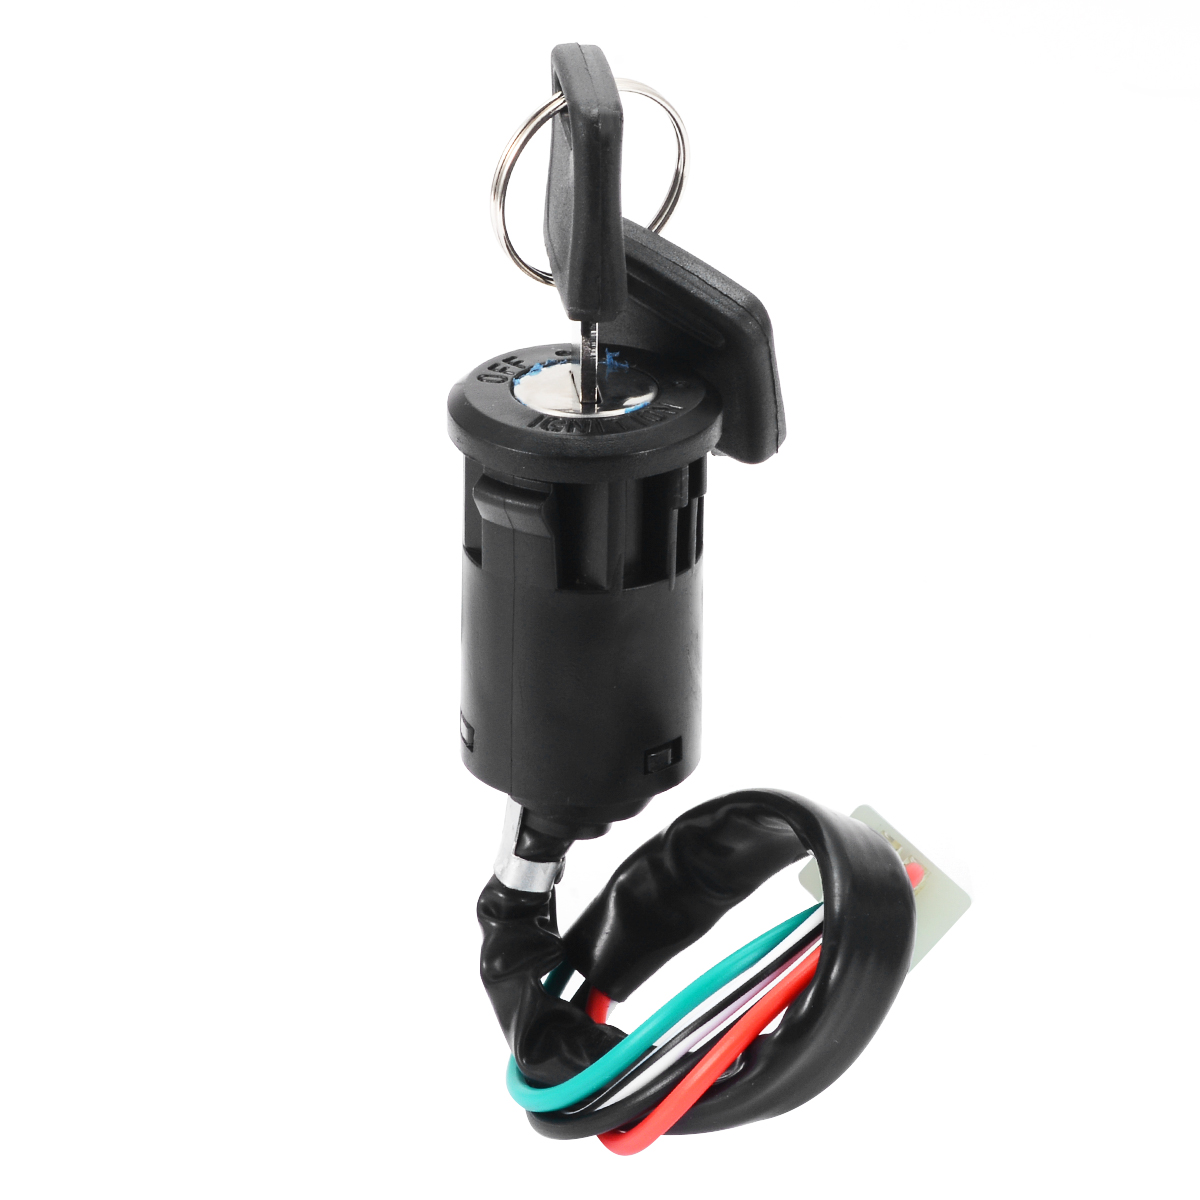 Universal Motorbike Ignition Kits 4 Wire ATV Ignition Switch+Key for 50 70 <font><b>90</b></font> <font><b>110</b></font> 125 150 200 250CC Motorbike ATV Quad Dirt Bike image